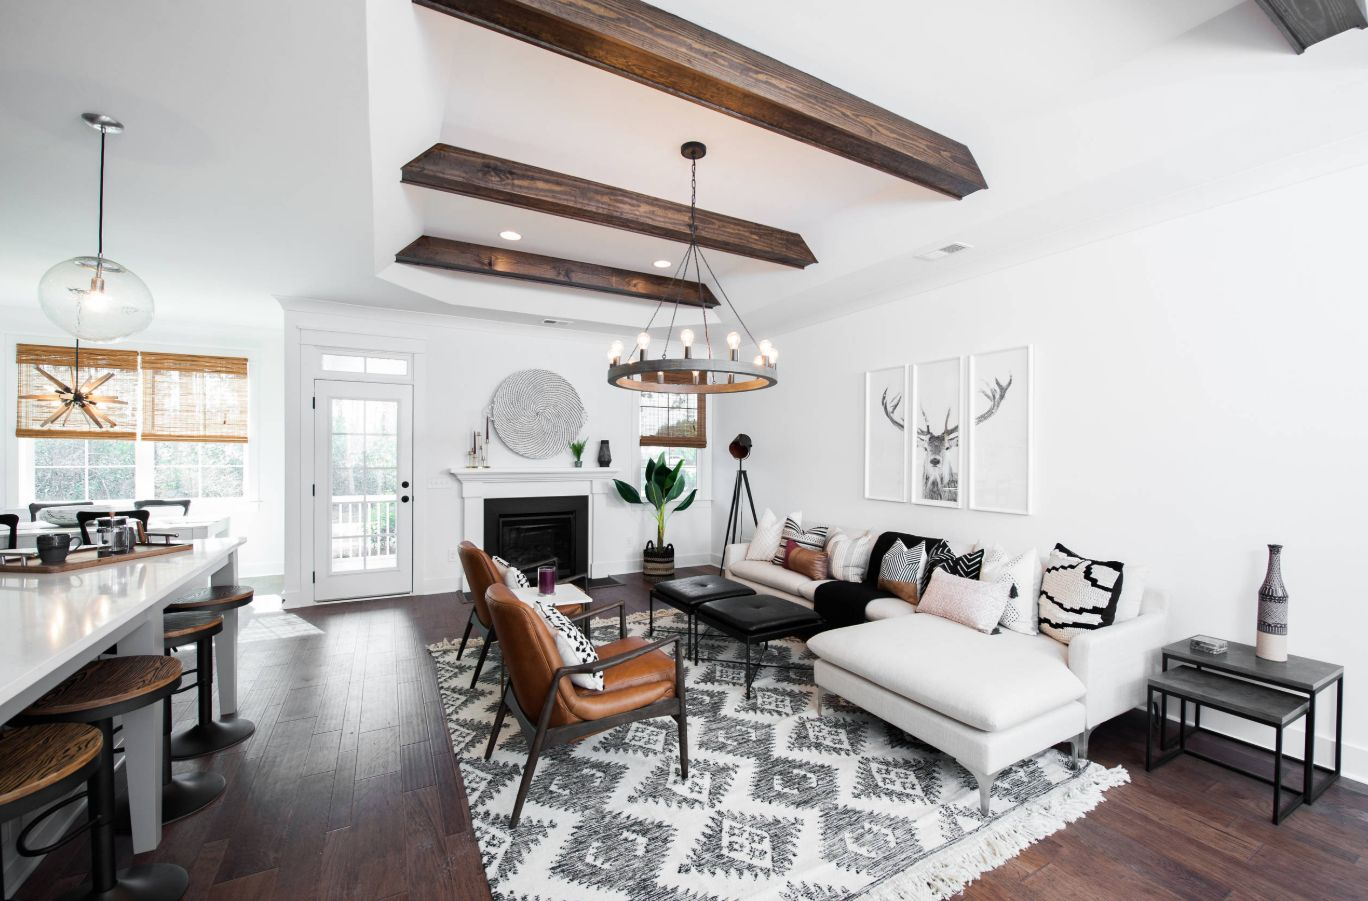 Another great combo puts together white living room furniture and wooden floors complemented by exposed beams